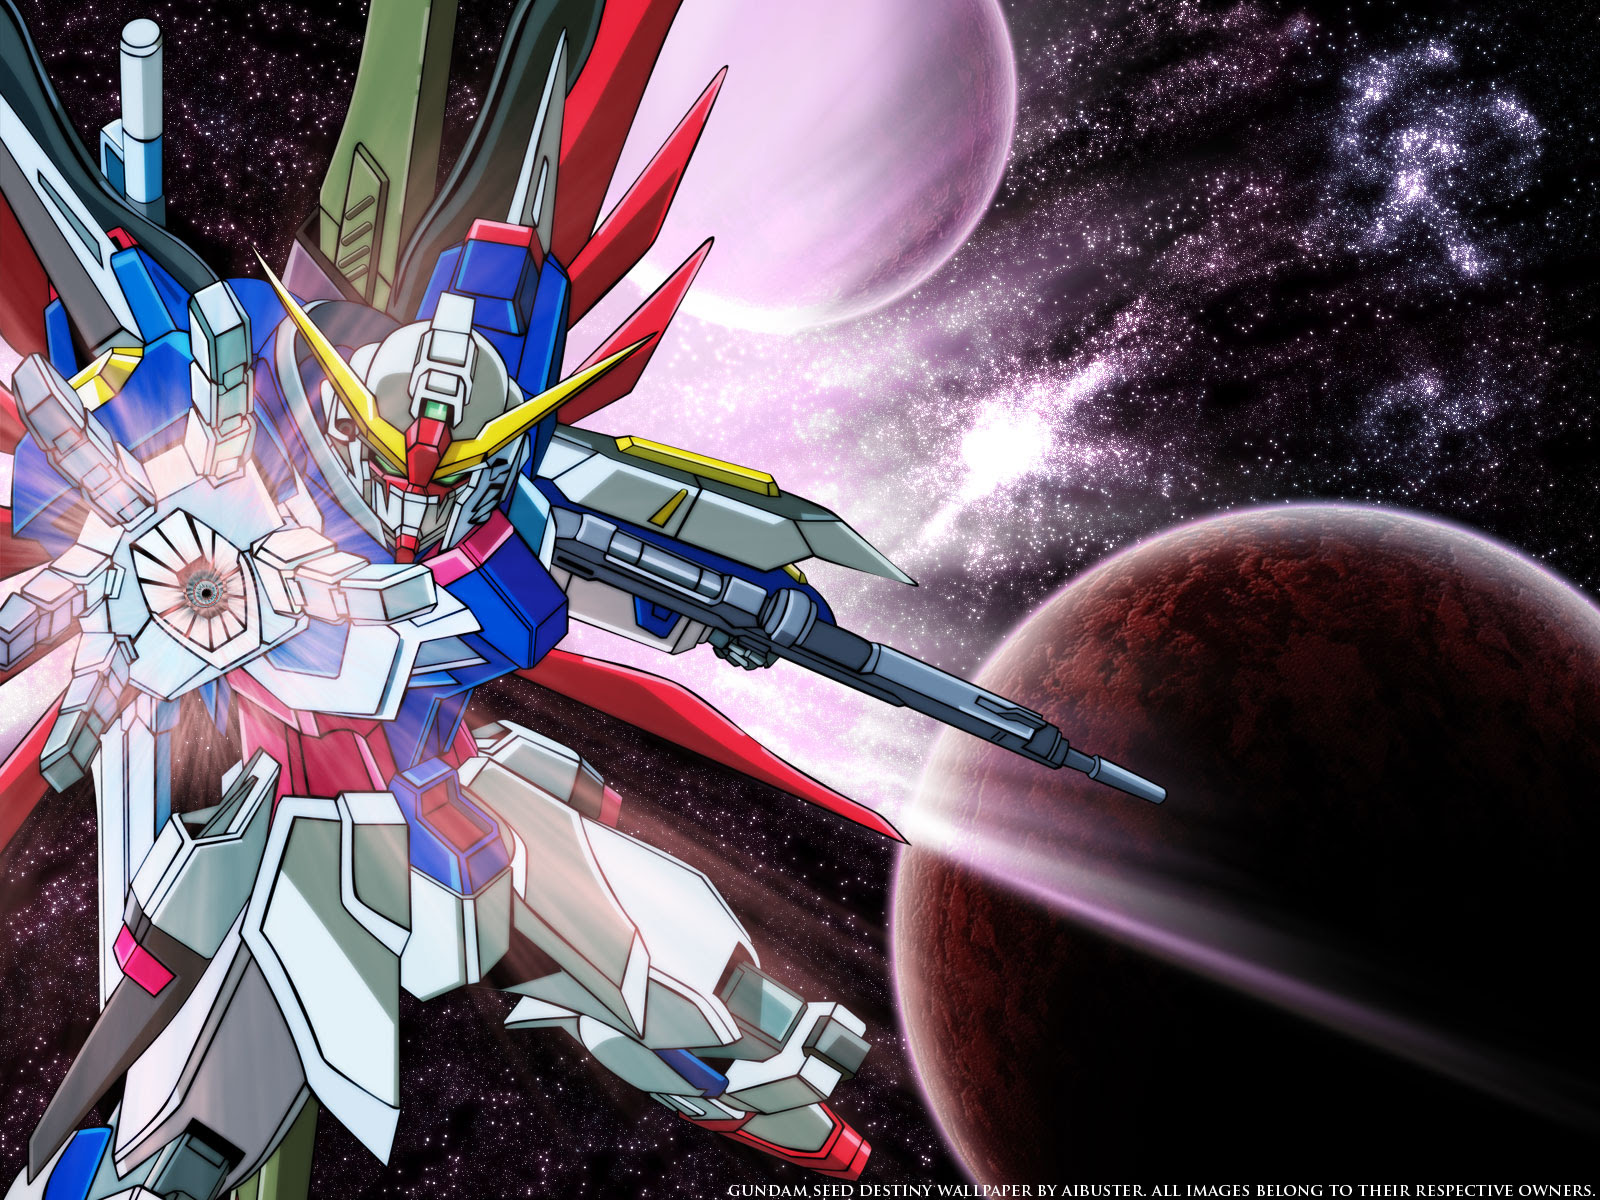 Mobile Suit Gundam Seed Destiny Wallpaper Hand Of God Minitokyo